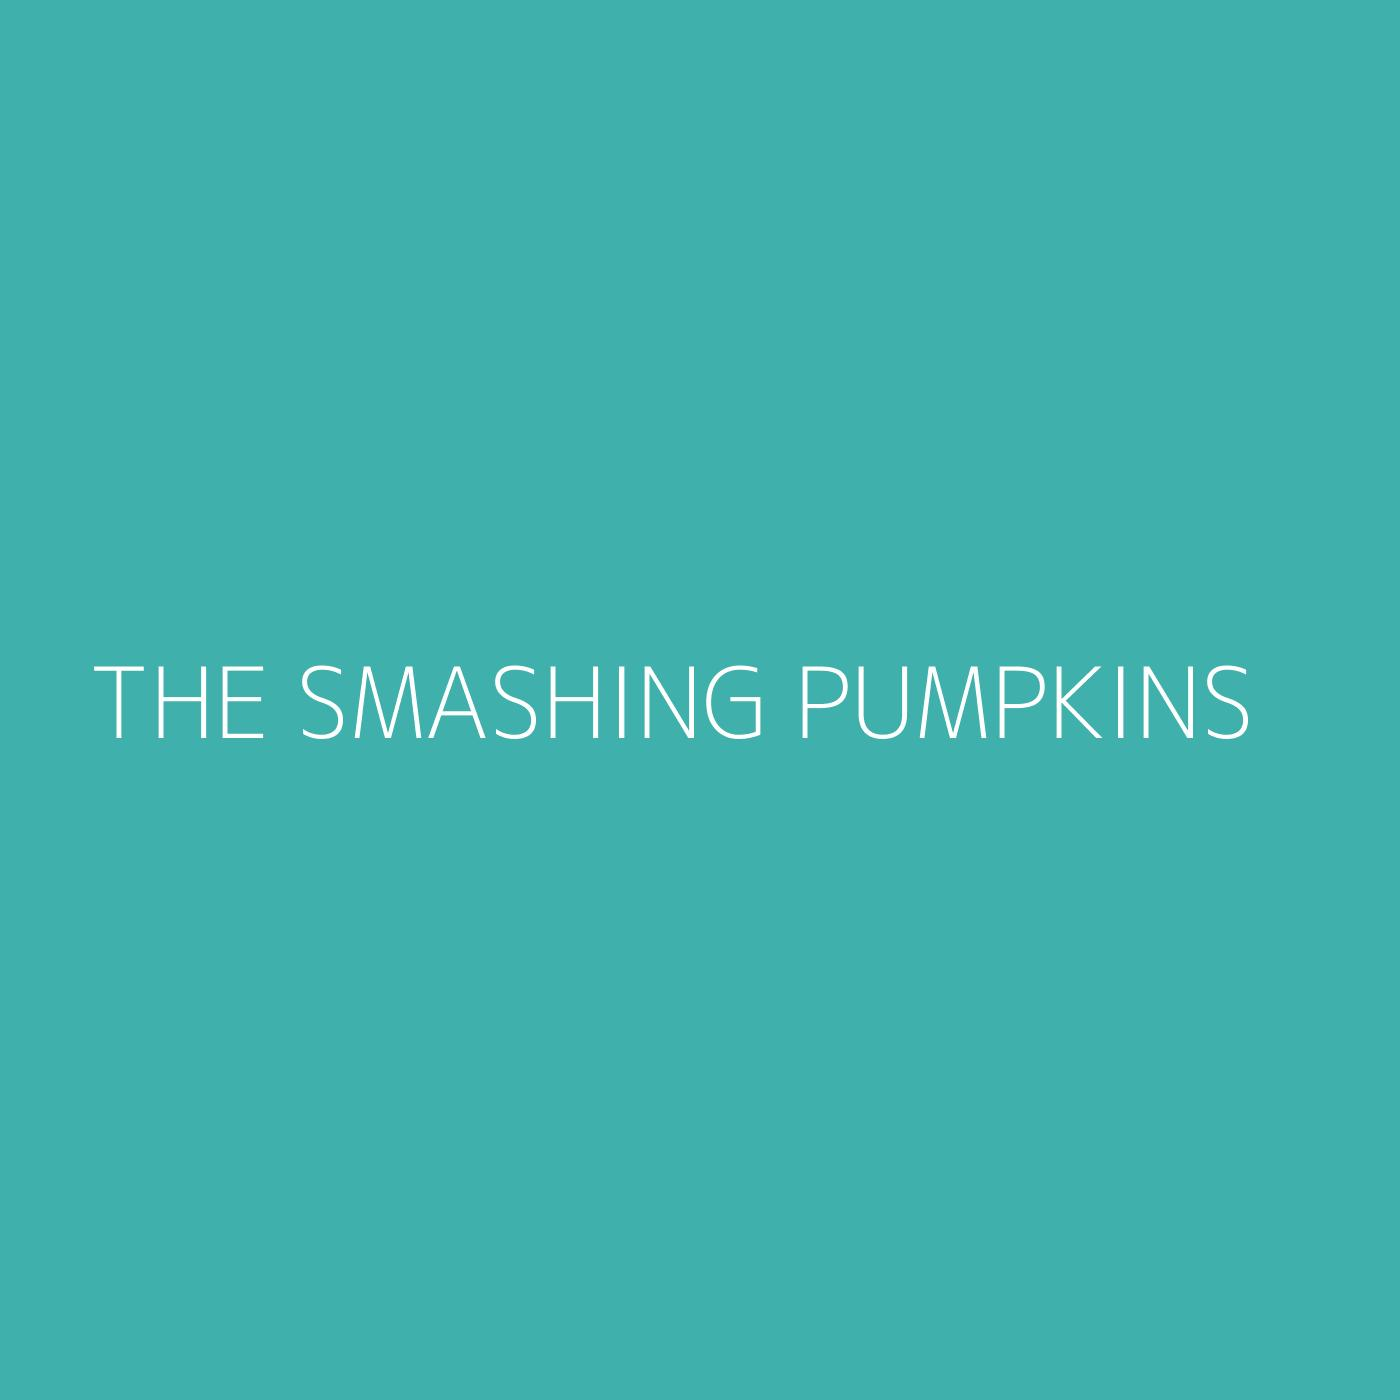 The Smashing Pumpkins Playlist Artwork